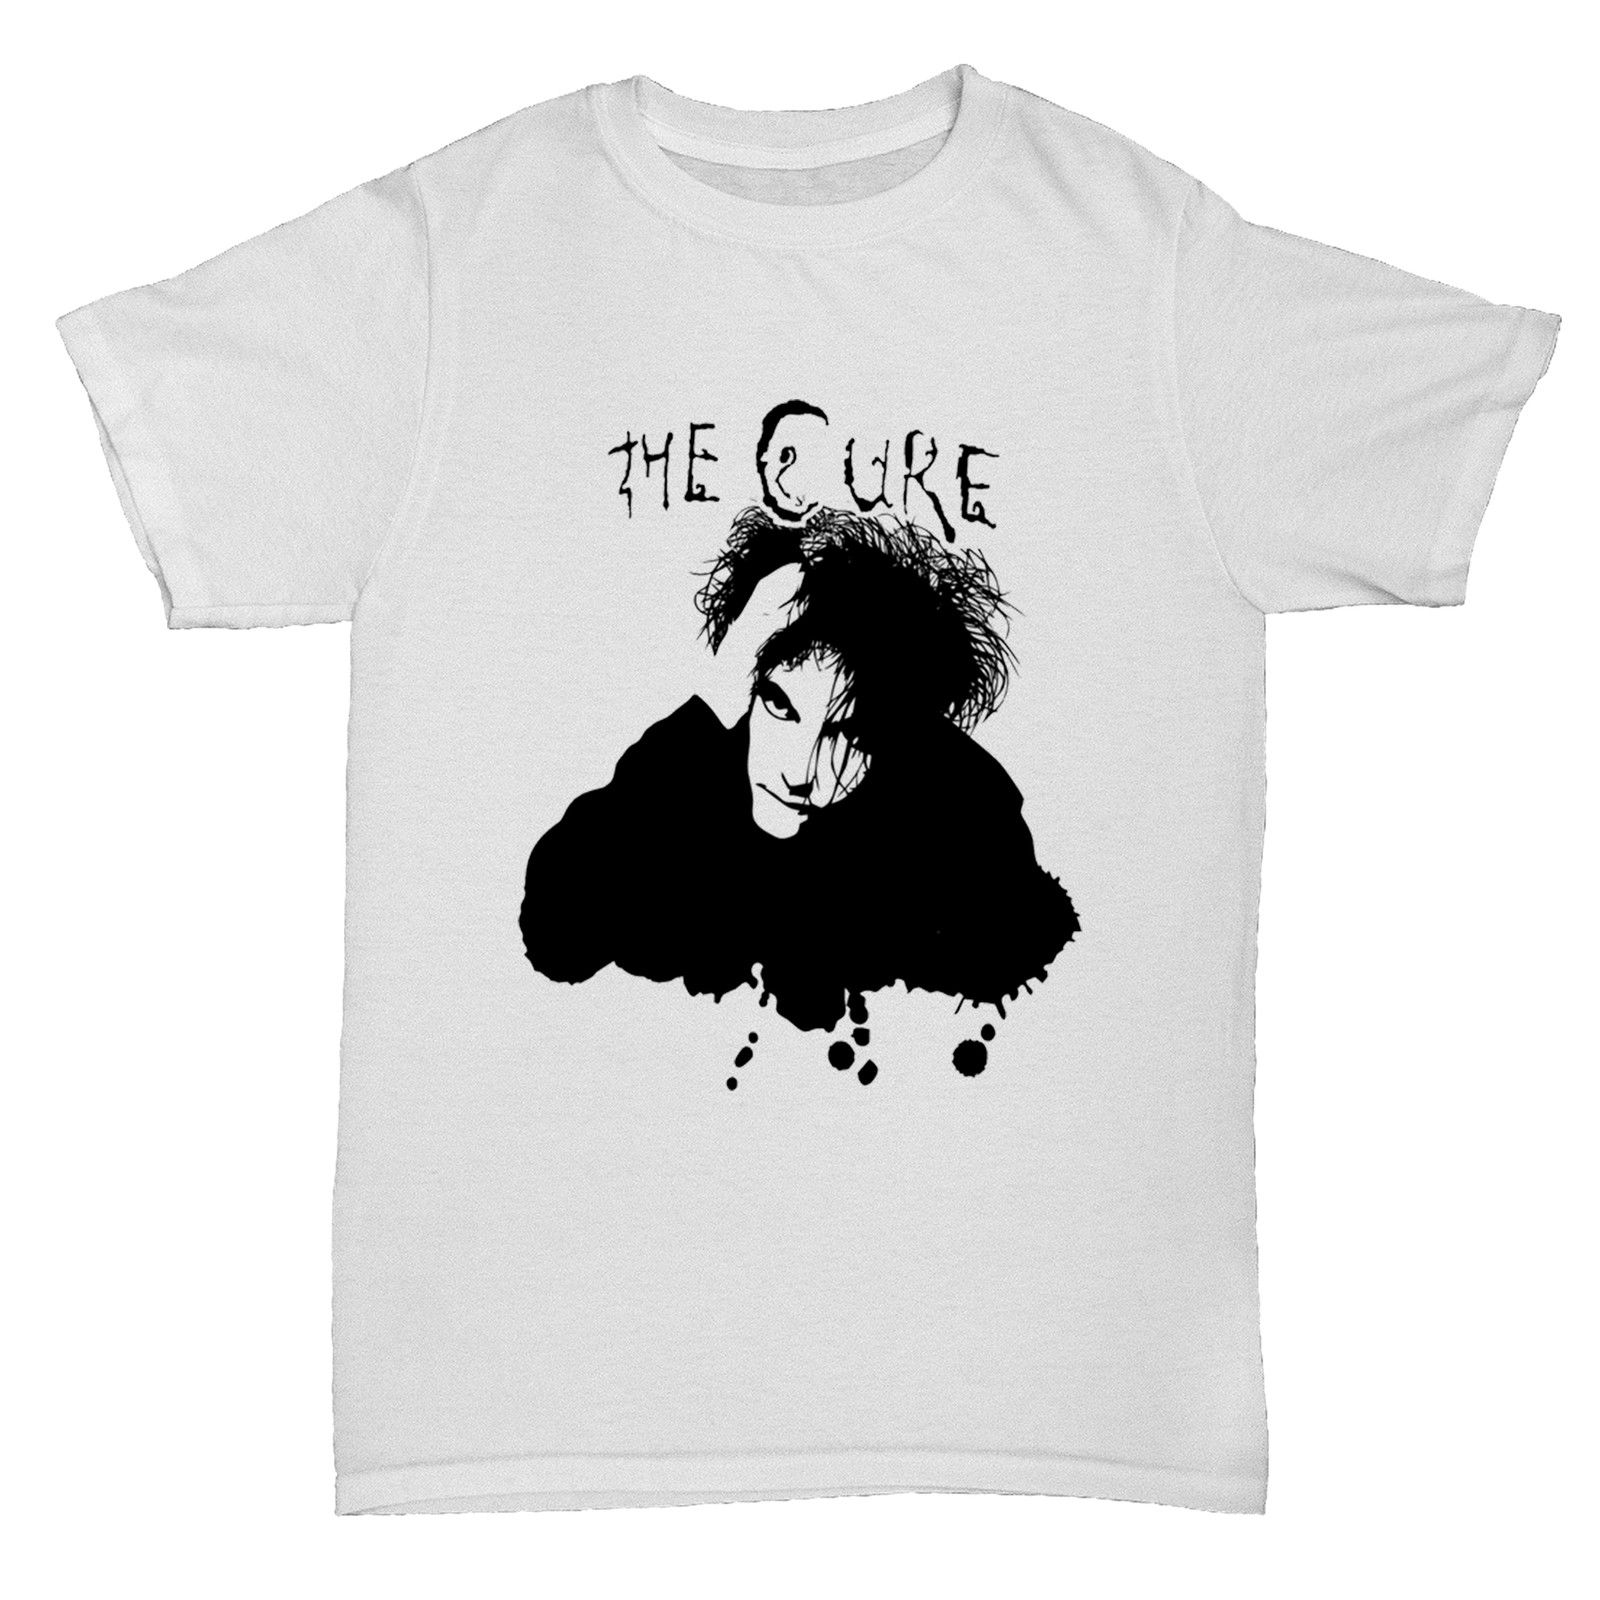 THE CURE MUSIC ROCK BAND INSPIRED CONCERT 80S 90S POP INDIE MUSIC RETRO T Shirt Cool Casual pride t shirt men Unisex New image